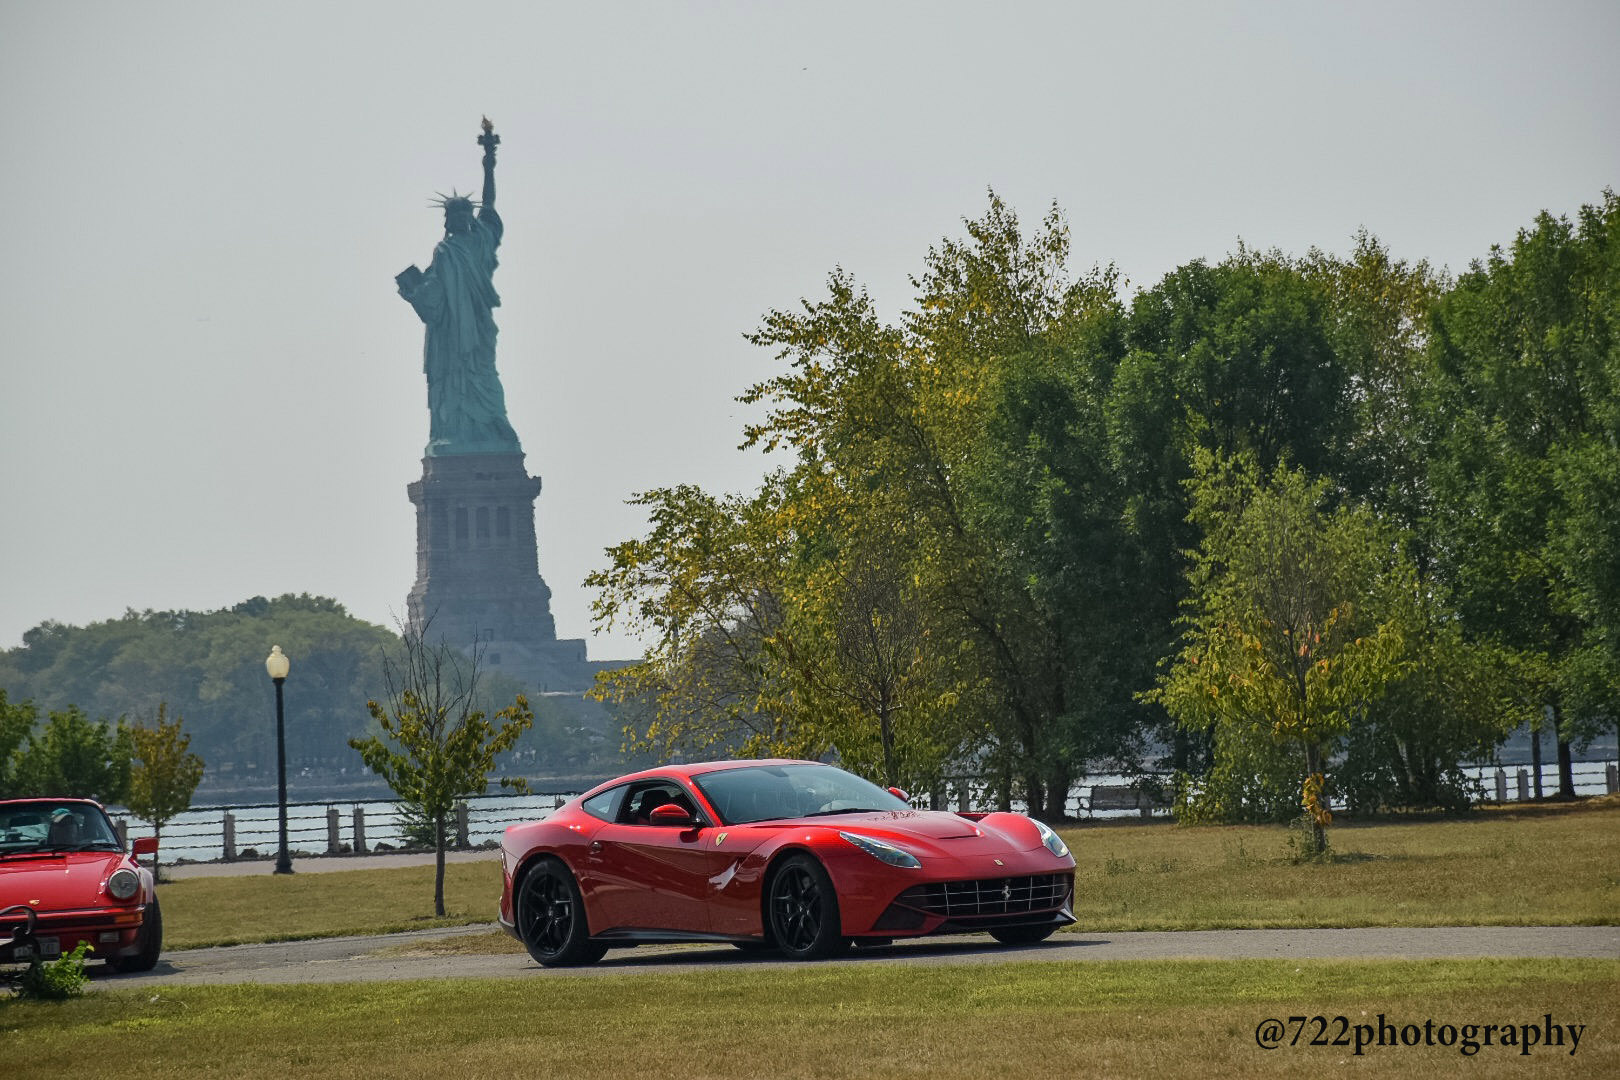 Ferrari, Statue of Liberty